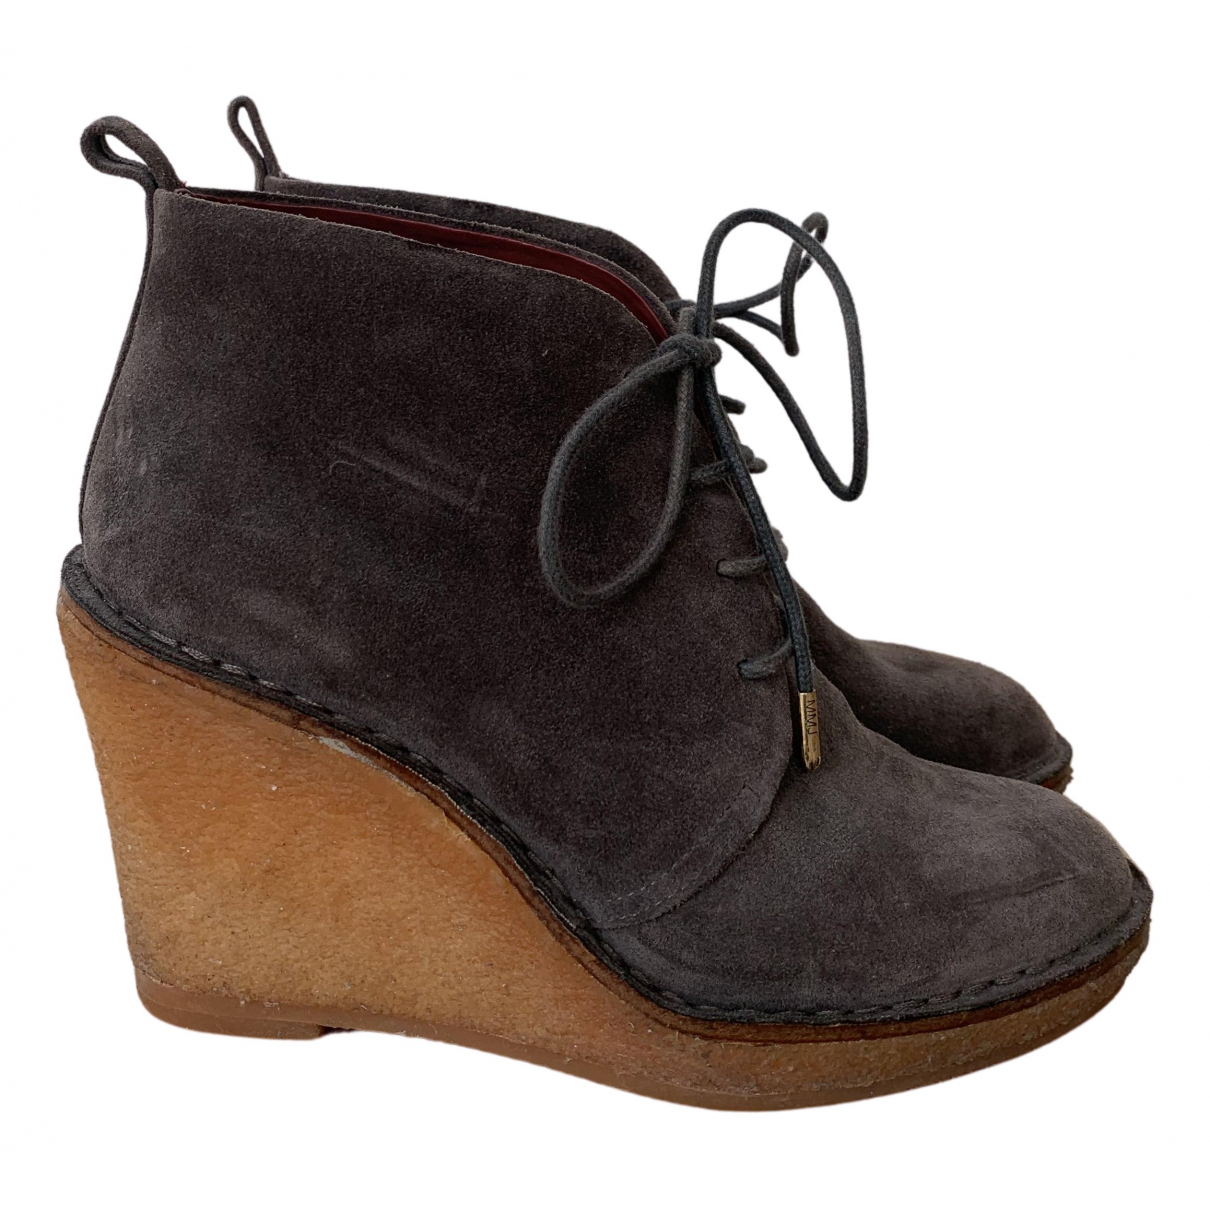 Marc By Marc Jacobs N Grey Suede Ankle boots for Women 39.5 EU